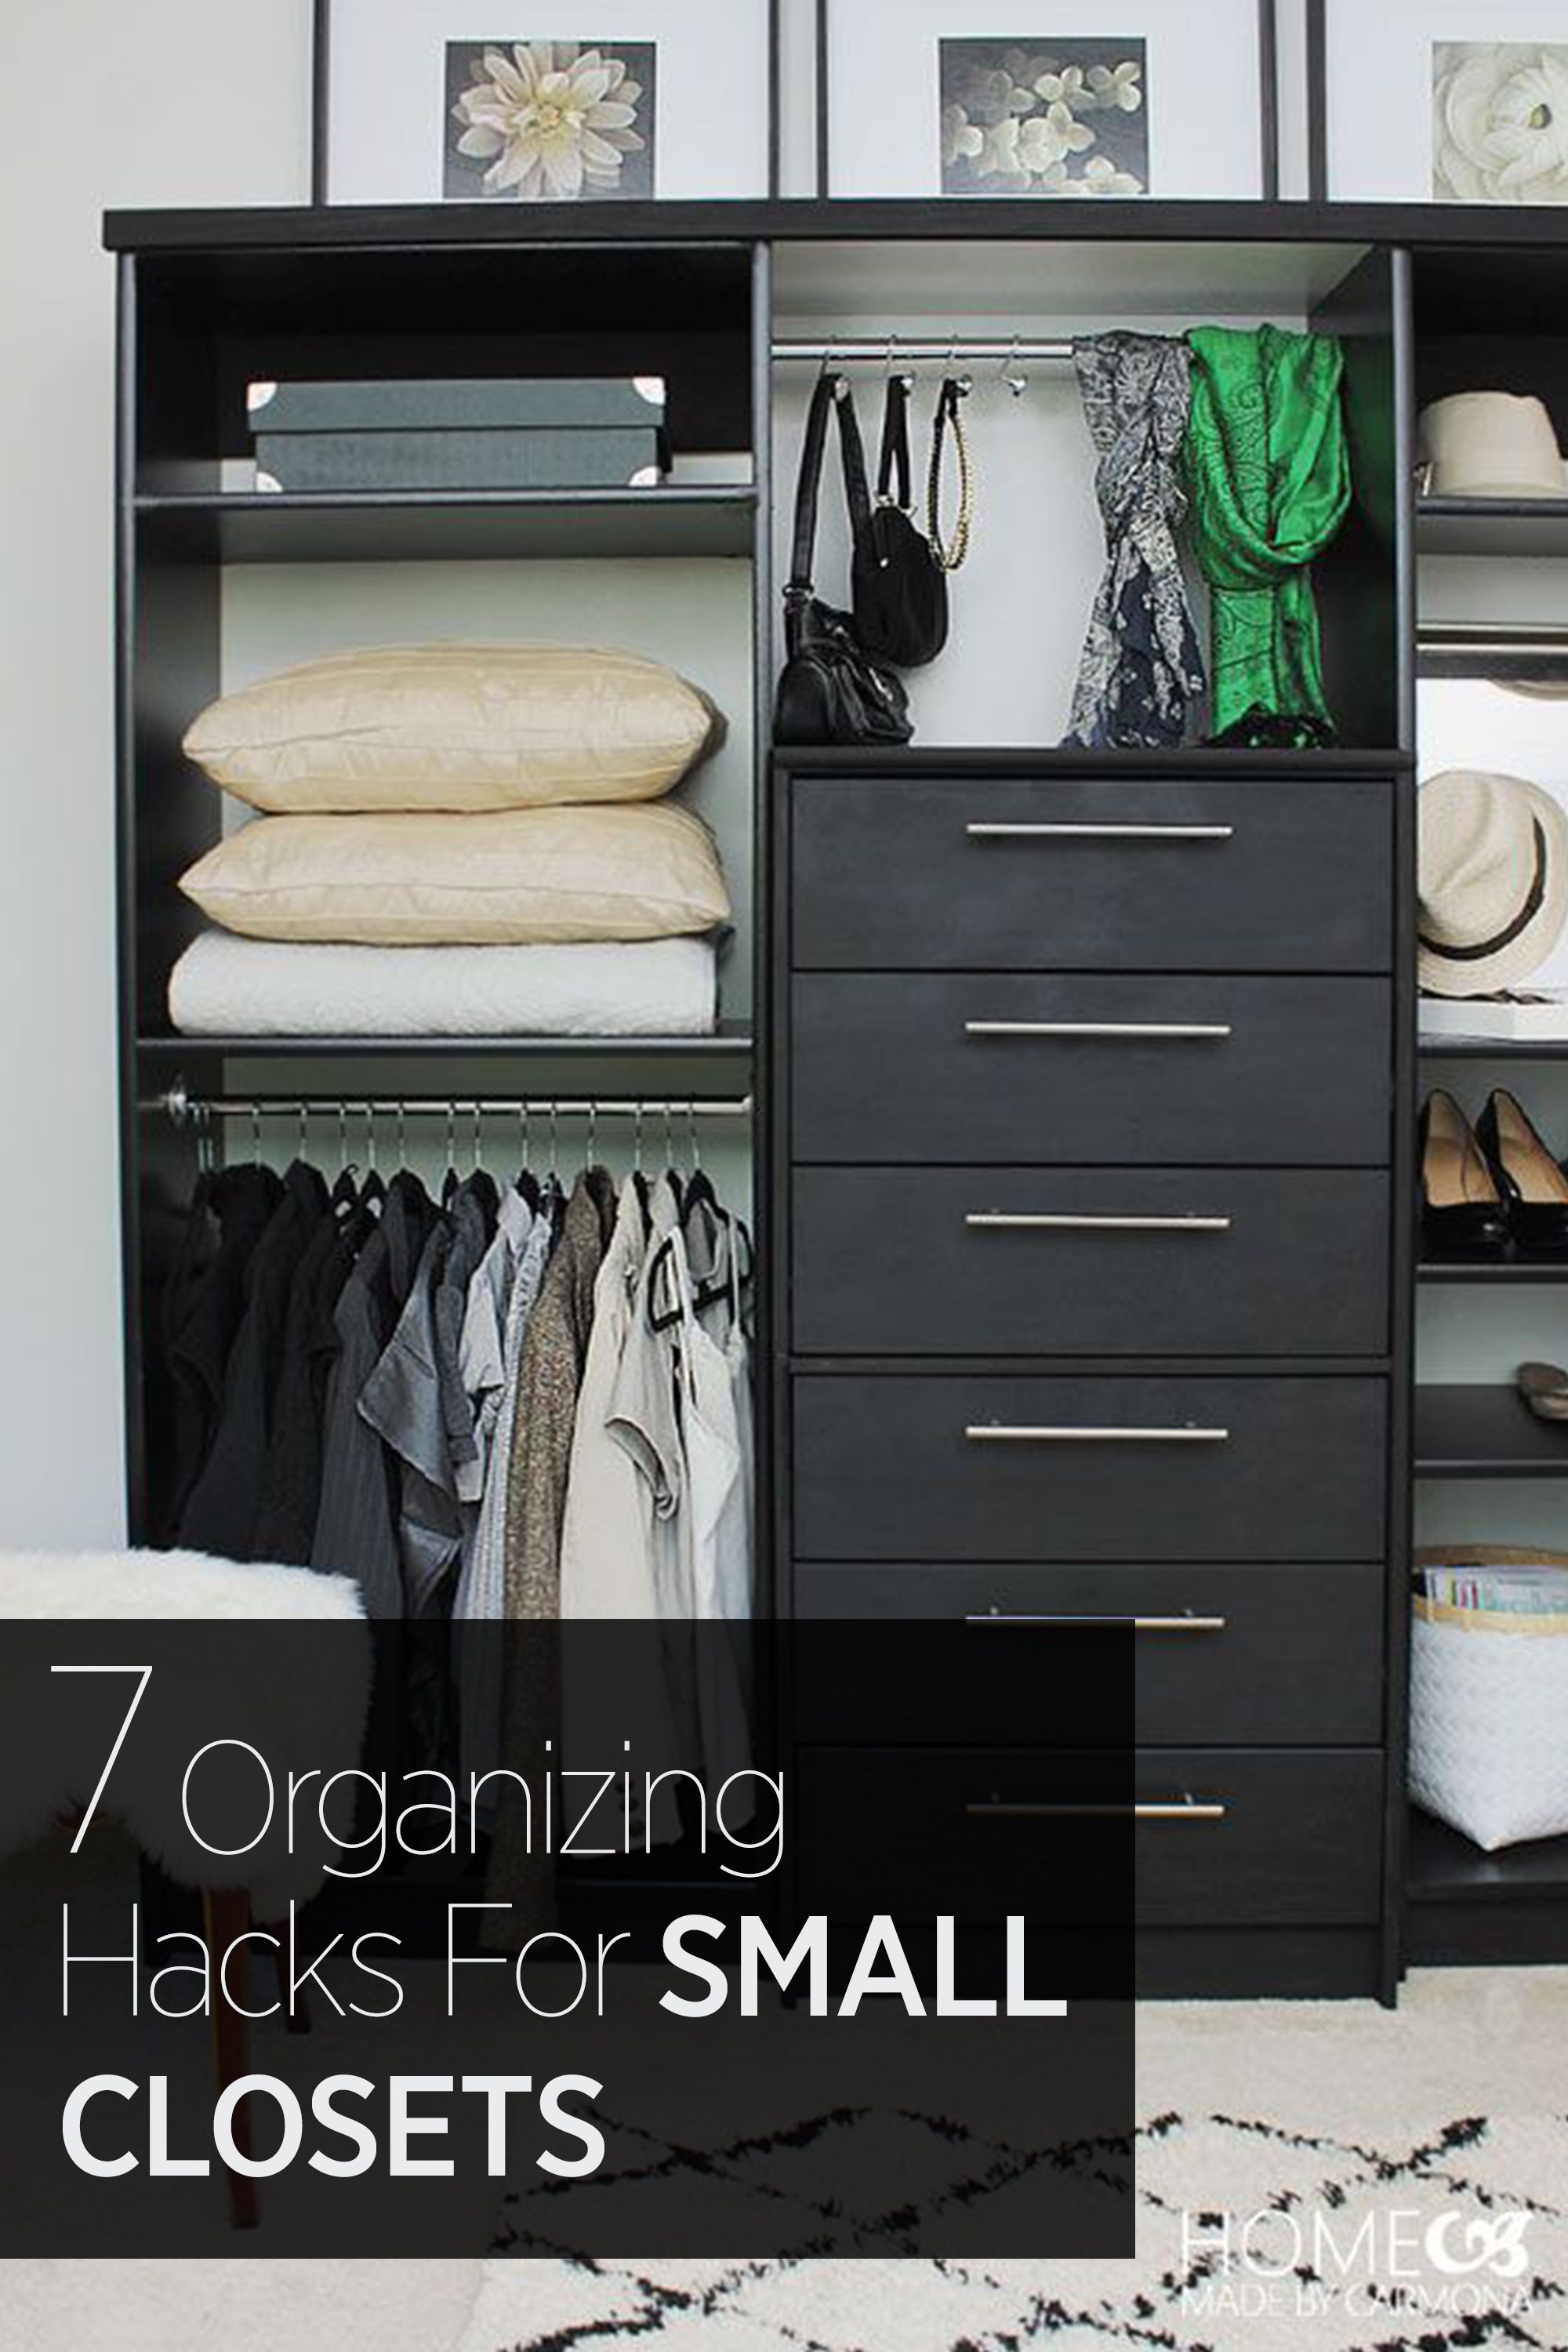 Etonnant How To Make A Small Closet Work With Even The Largest Of Wardrobes: